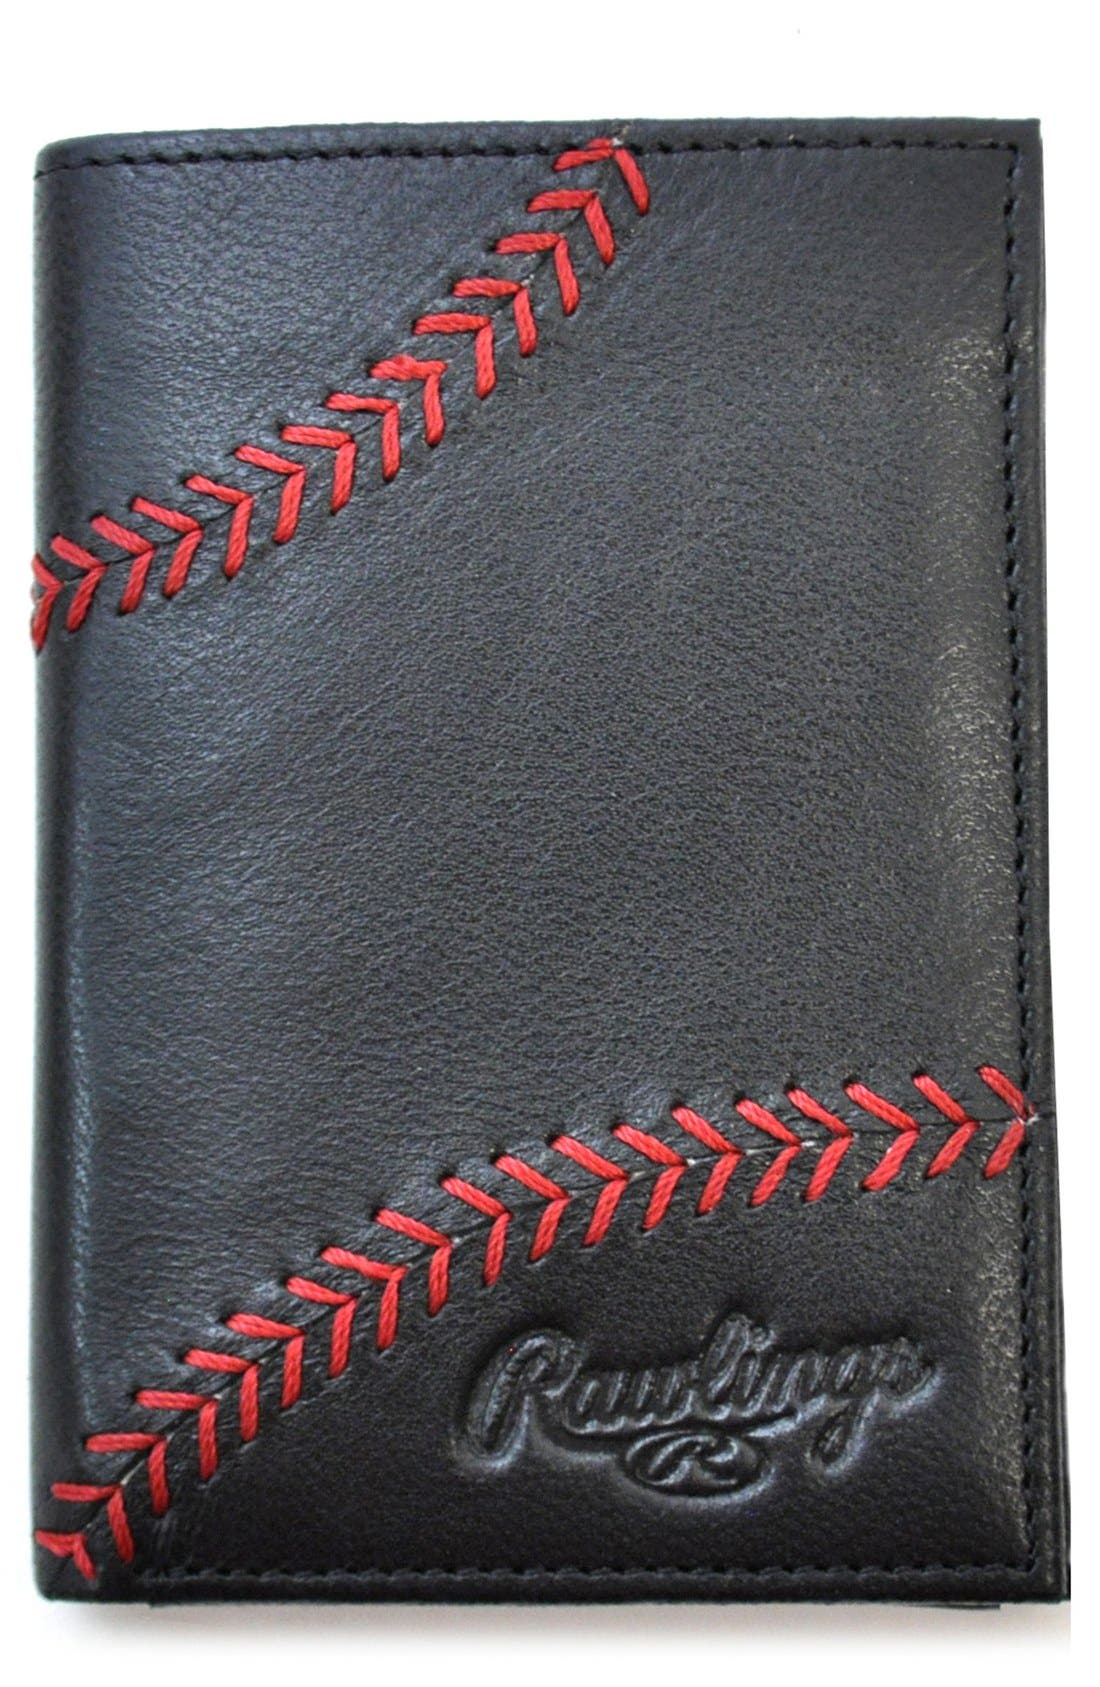 RAWLINGS Baseball Stitch Leather Money Clip Wallet